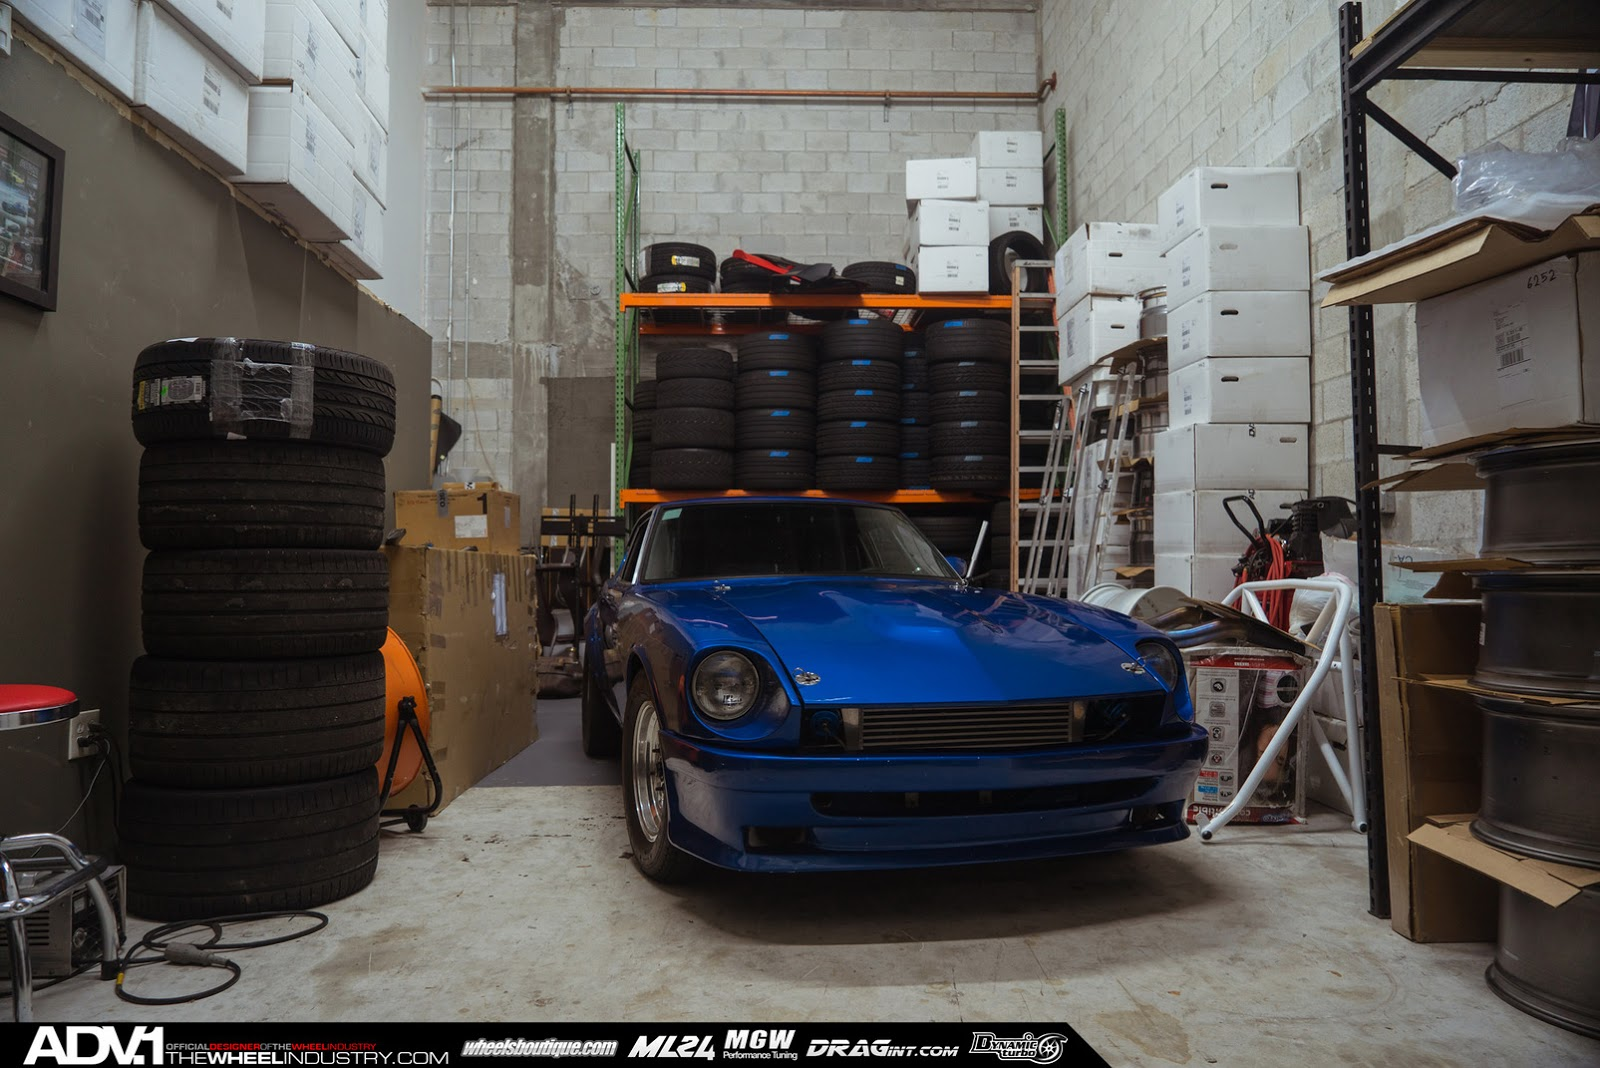 ADV.1 Wheels' +1,000HP Supra-Powered 1978 Datsun 280Z Is A Beast | Carscoops